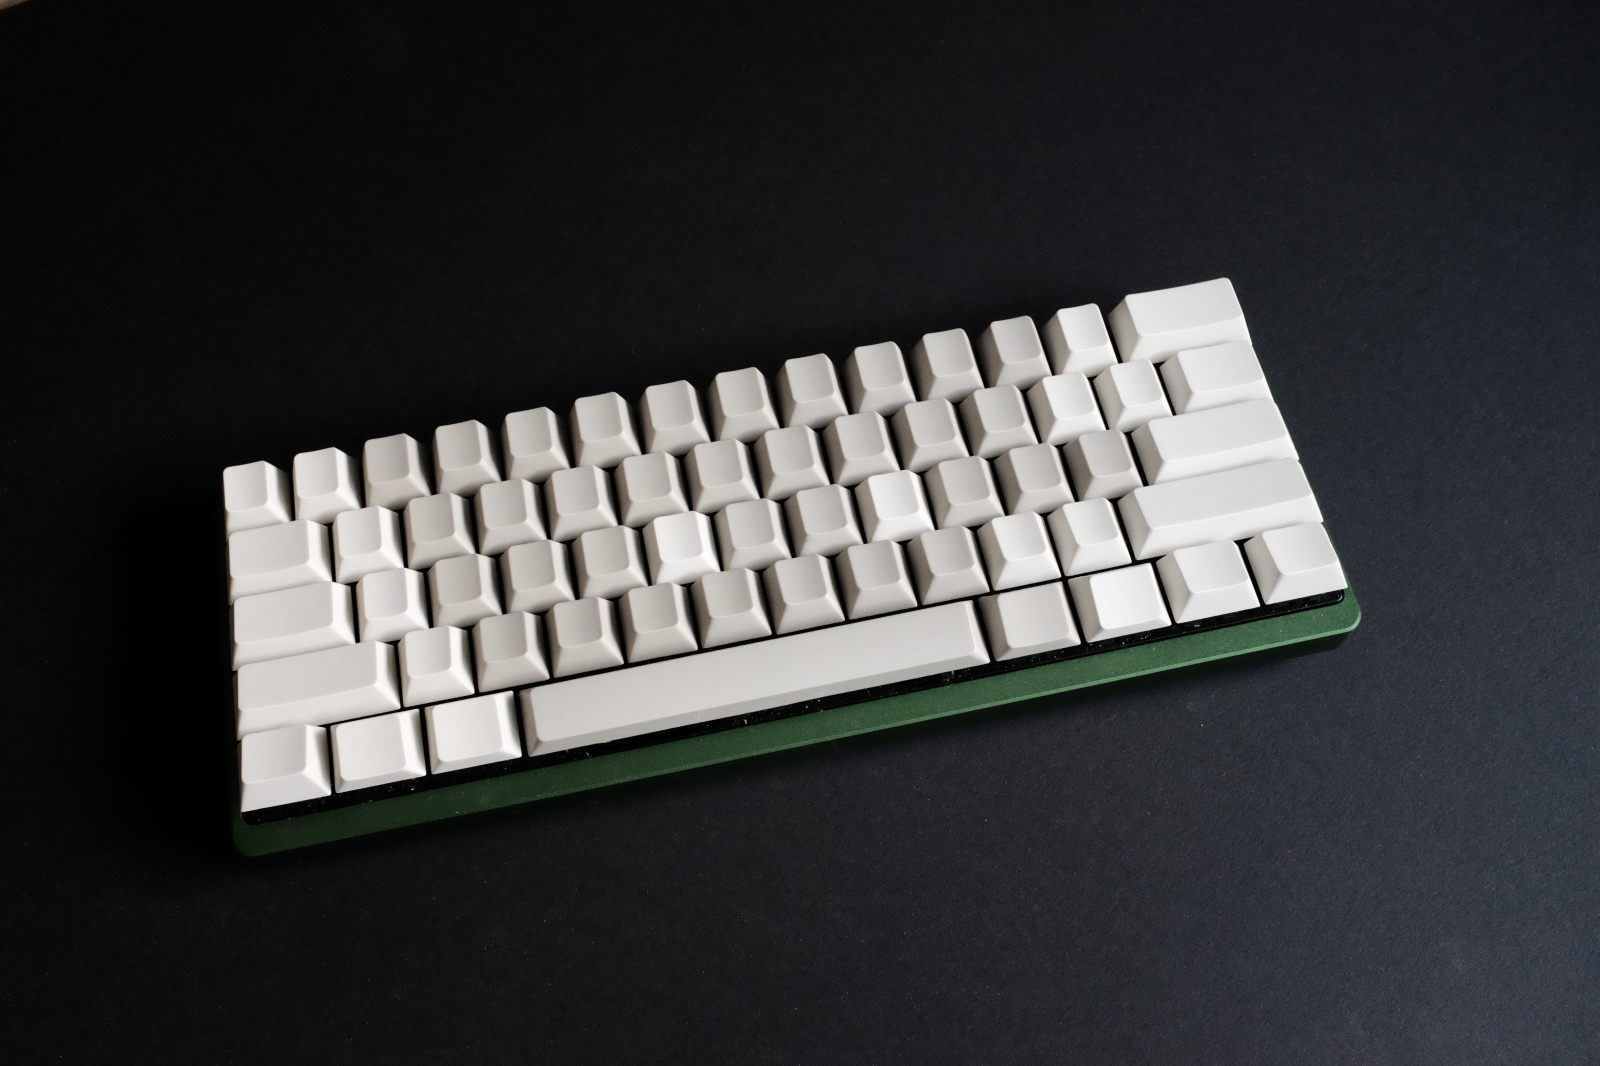 Poker 2 with Gateron light grey and biege keycaps